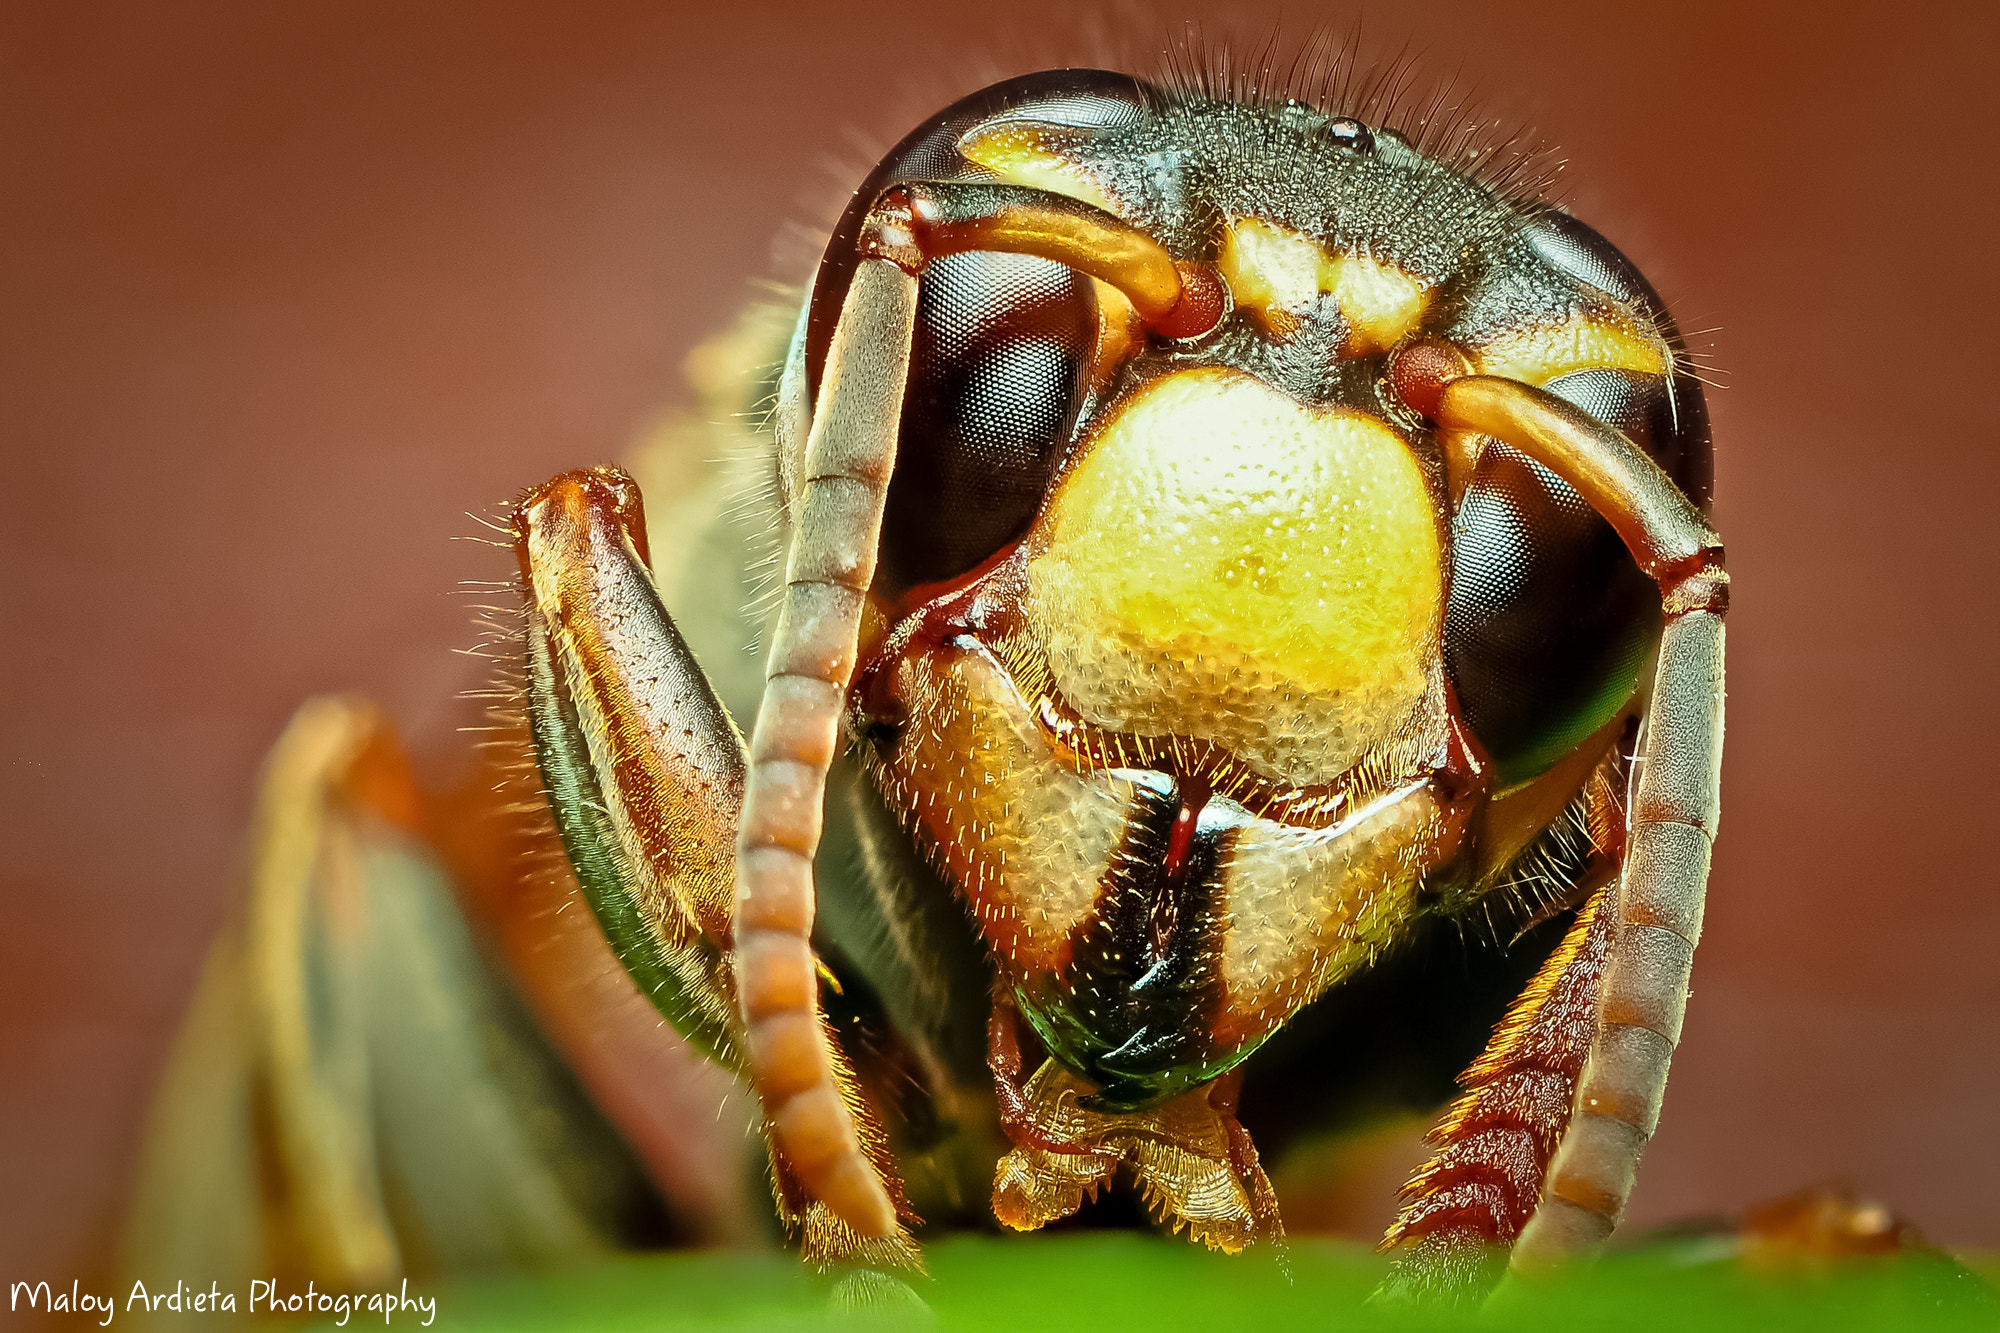 Photograph Bee - Closeup by Maloy Ardieta on 500px